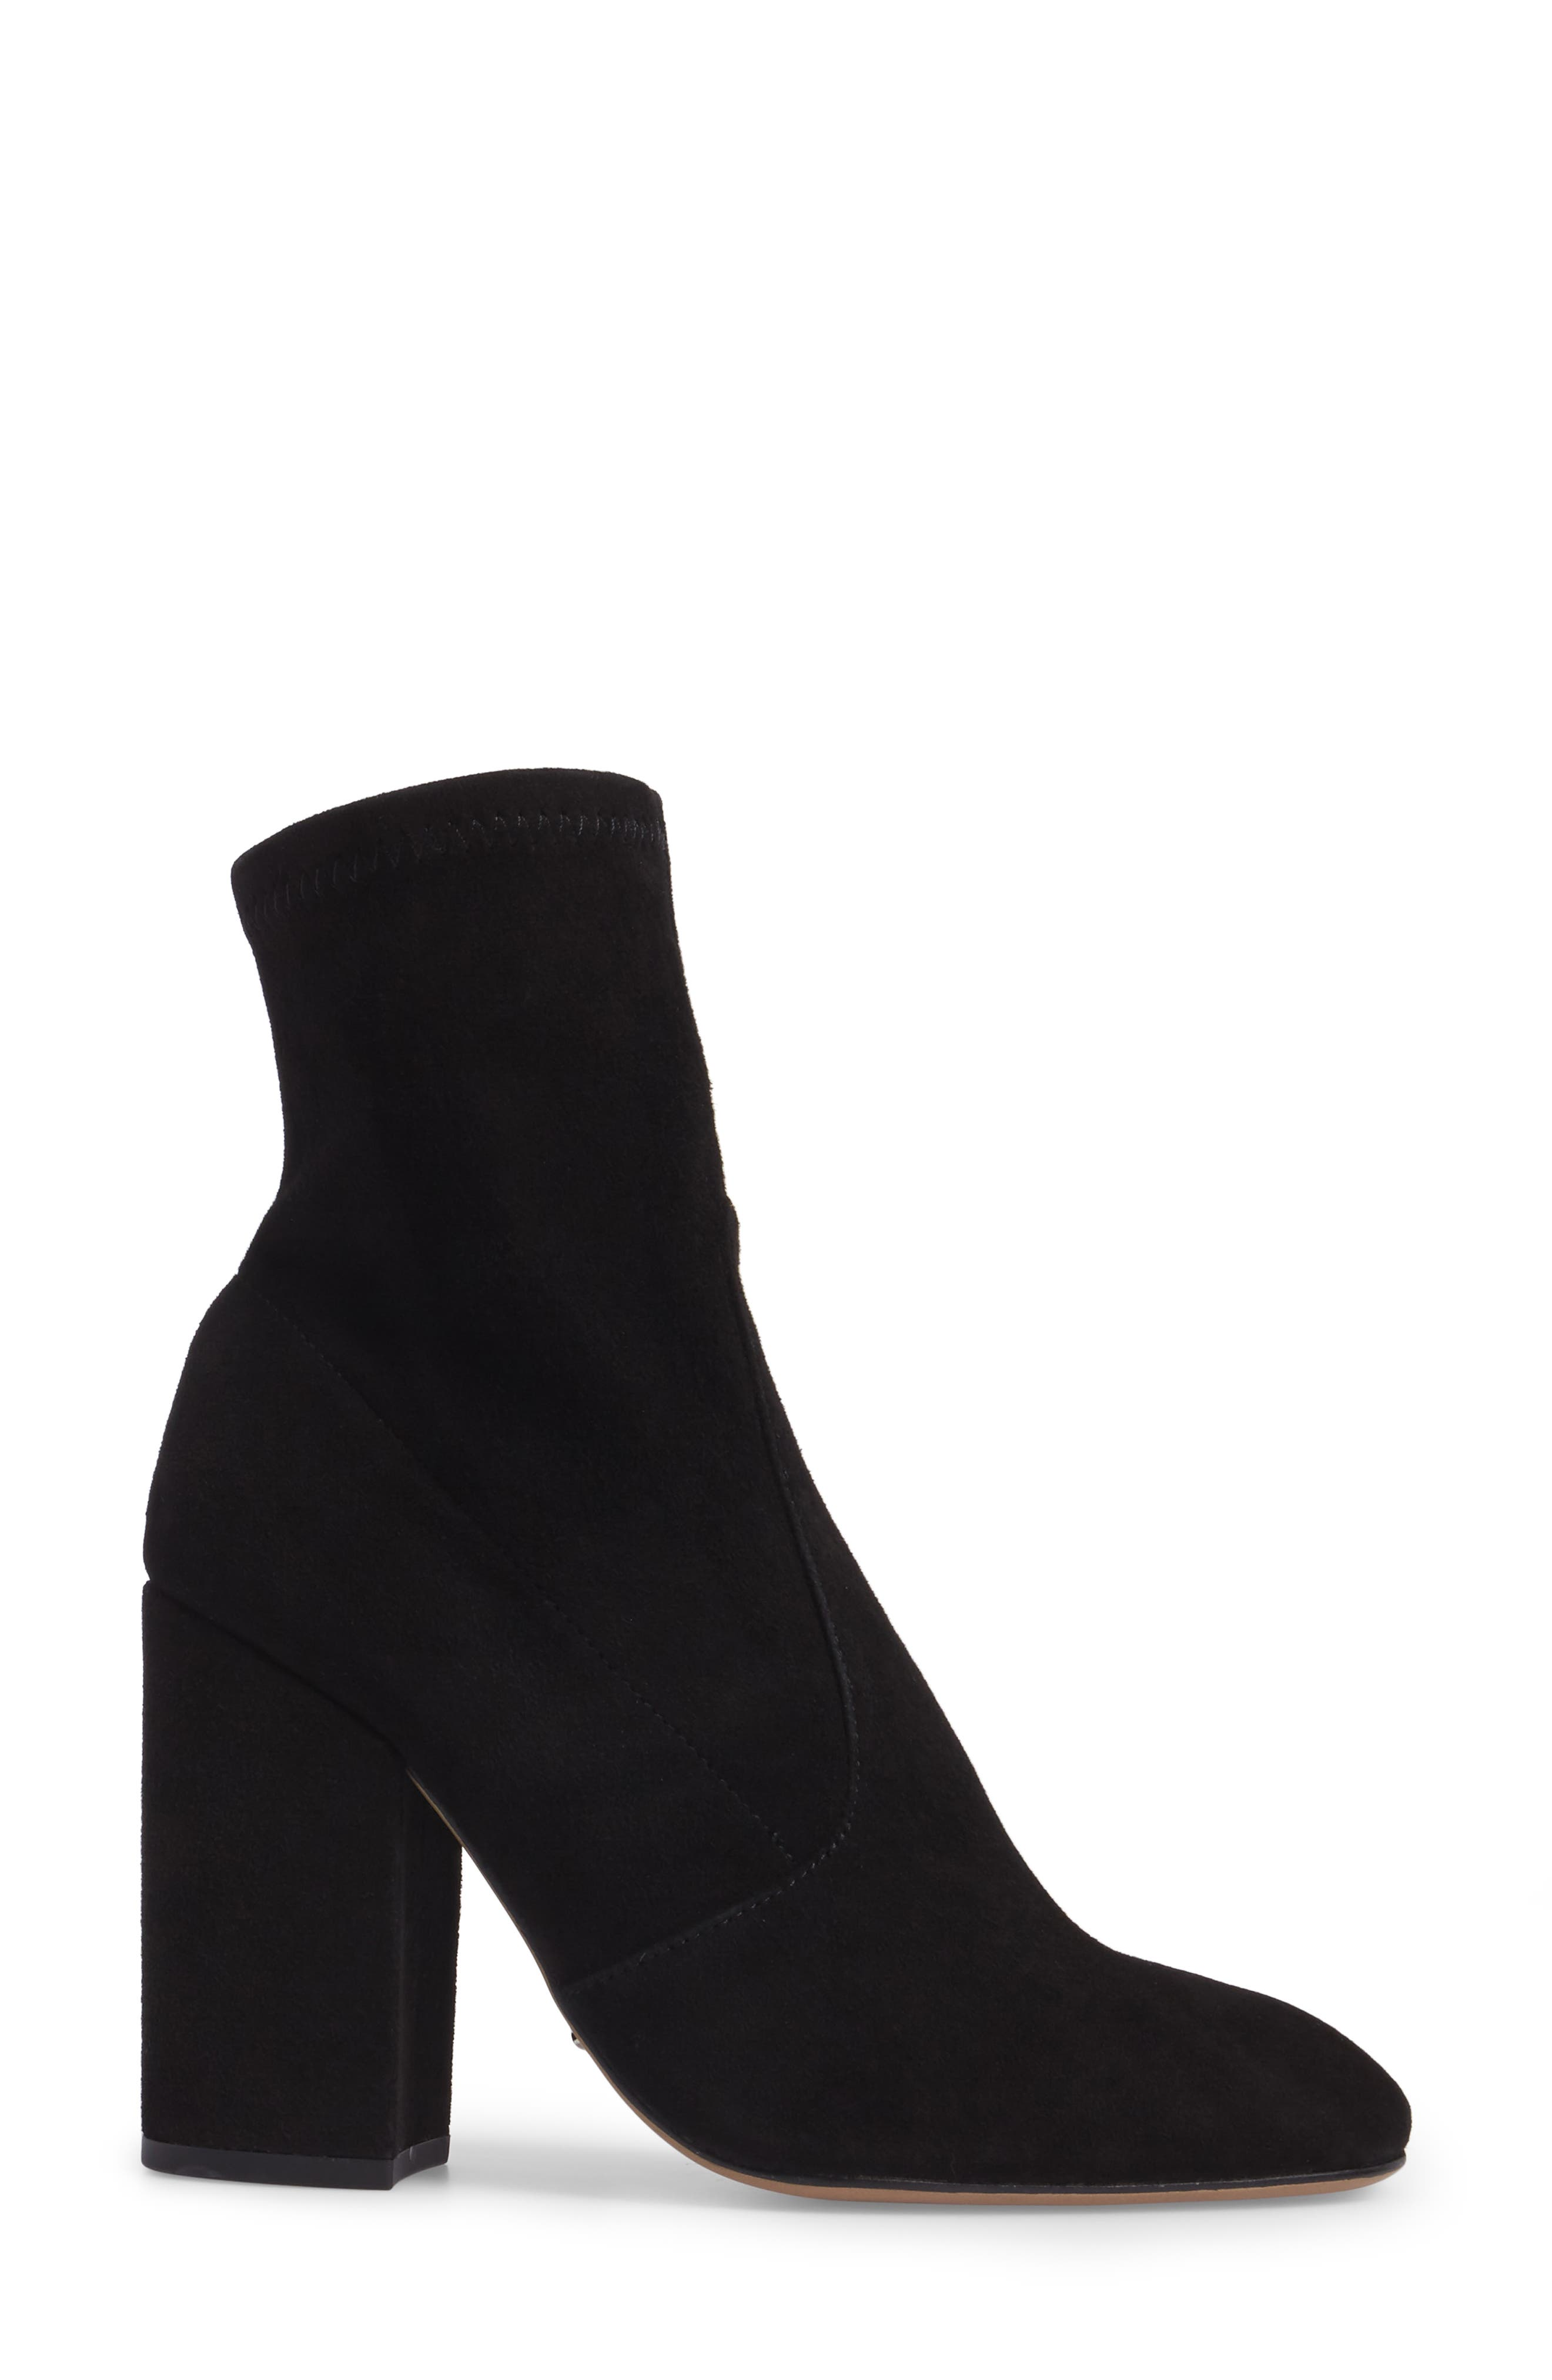 Alaia Block Heel Bootie,                             Alternate thumbnail 3, color,                             Black Suede